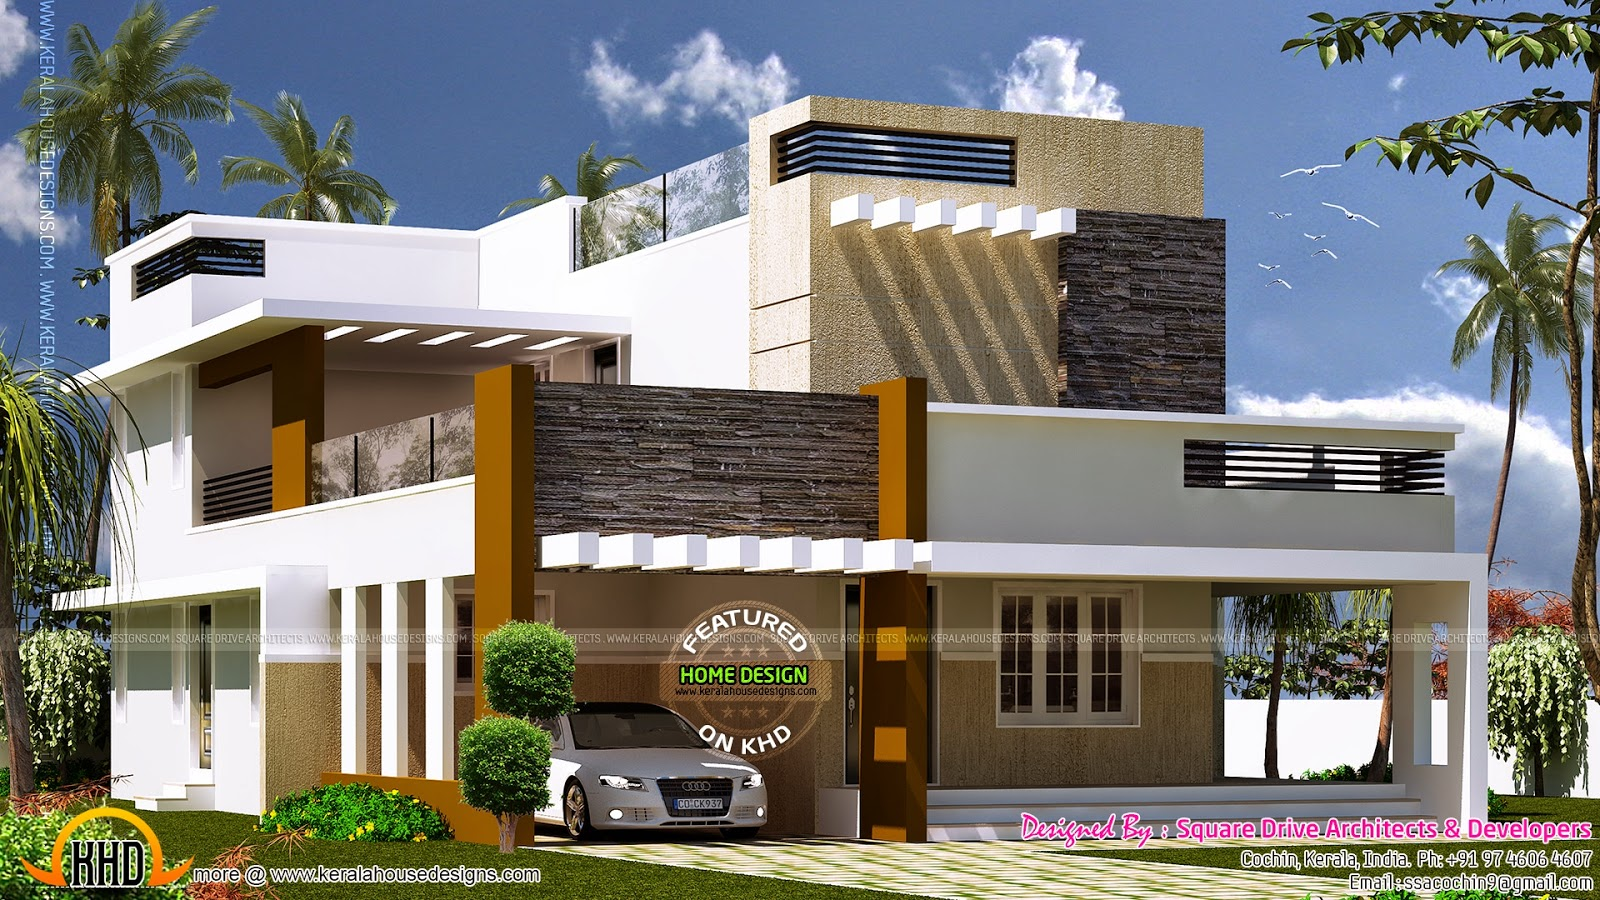 Exterior design of contemporary villa kerala home design for Modern villa exterior design